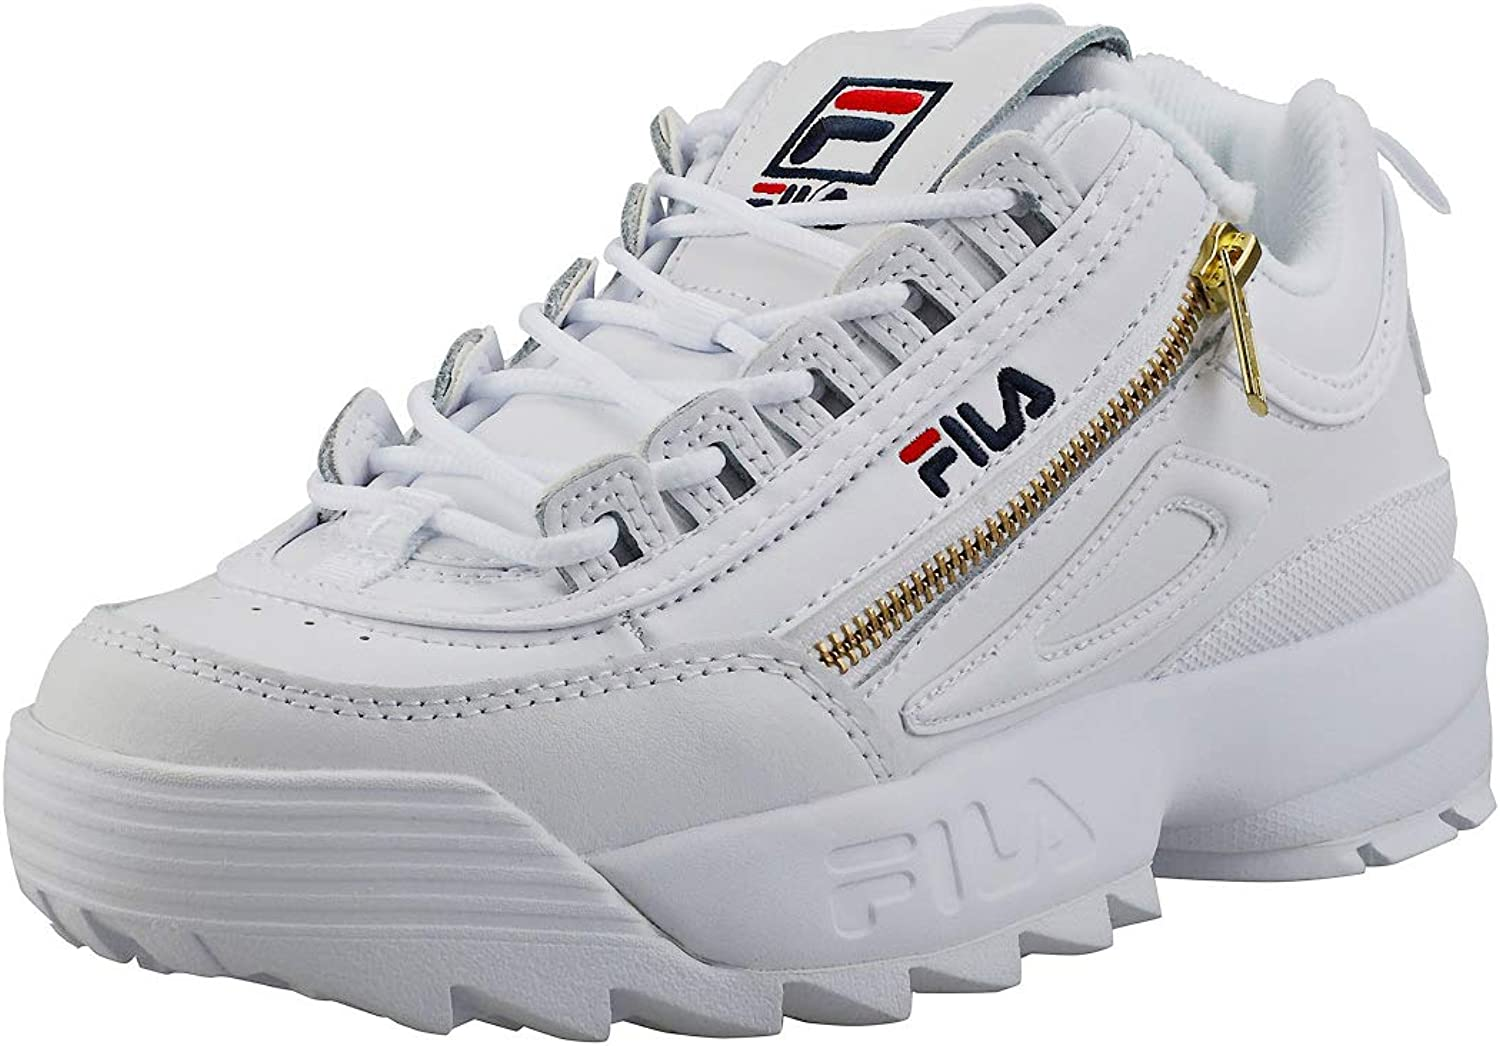 Fila Disruptor 2 Zipper Damen Turnschuhe Plattform